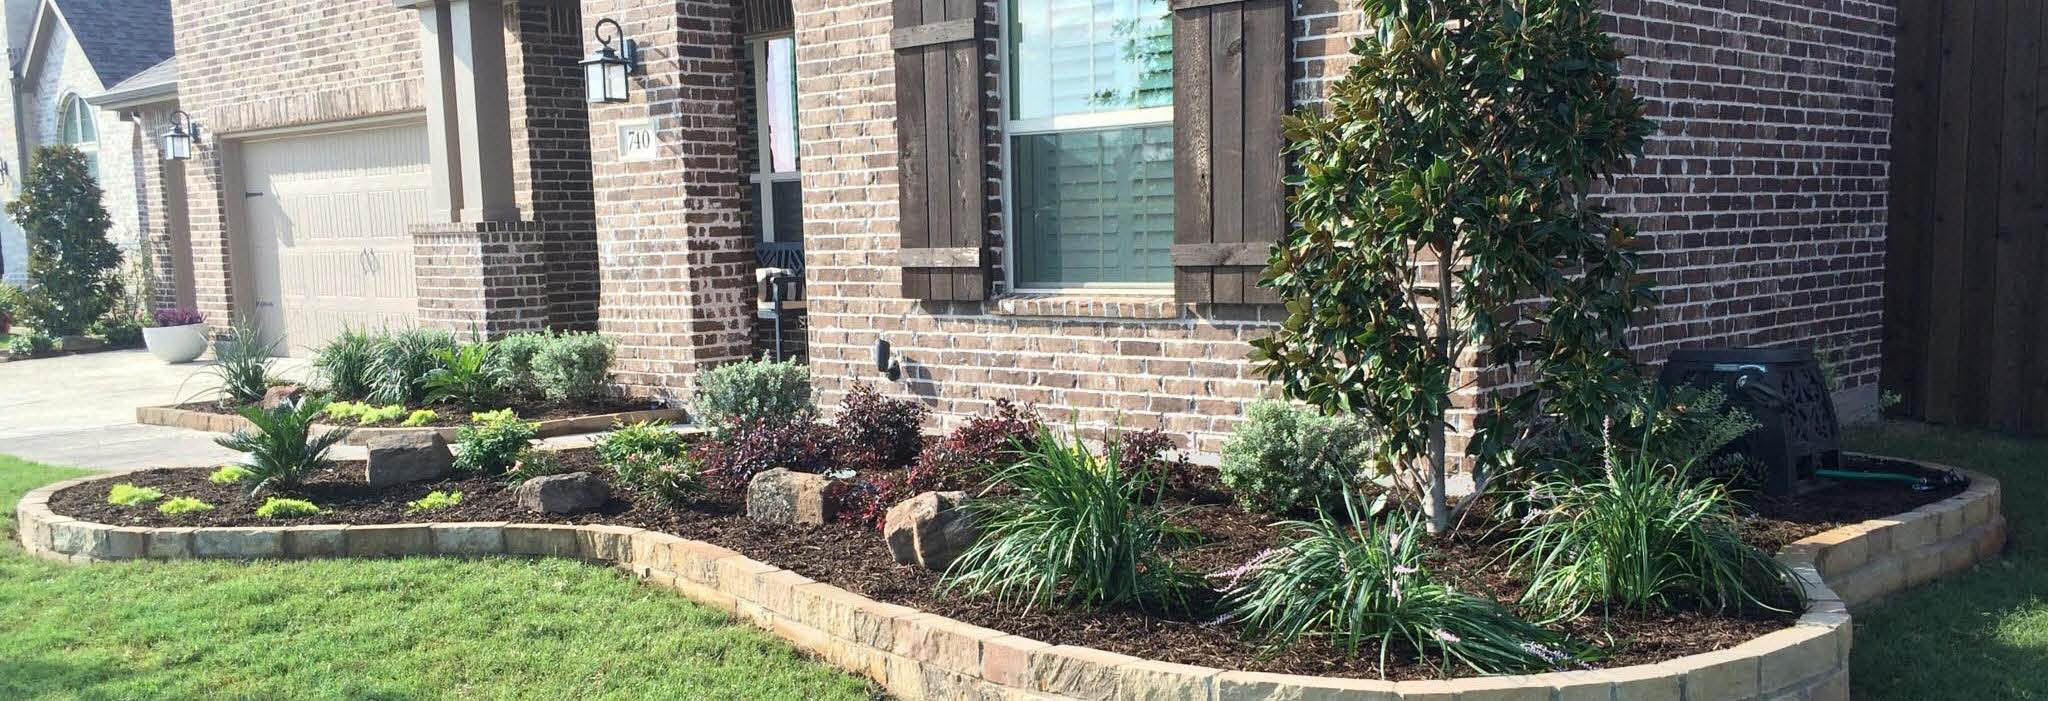 lukes-landscape-and-maintenance-mckinney-tx